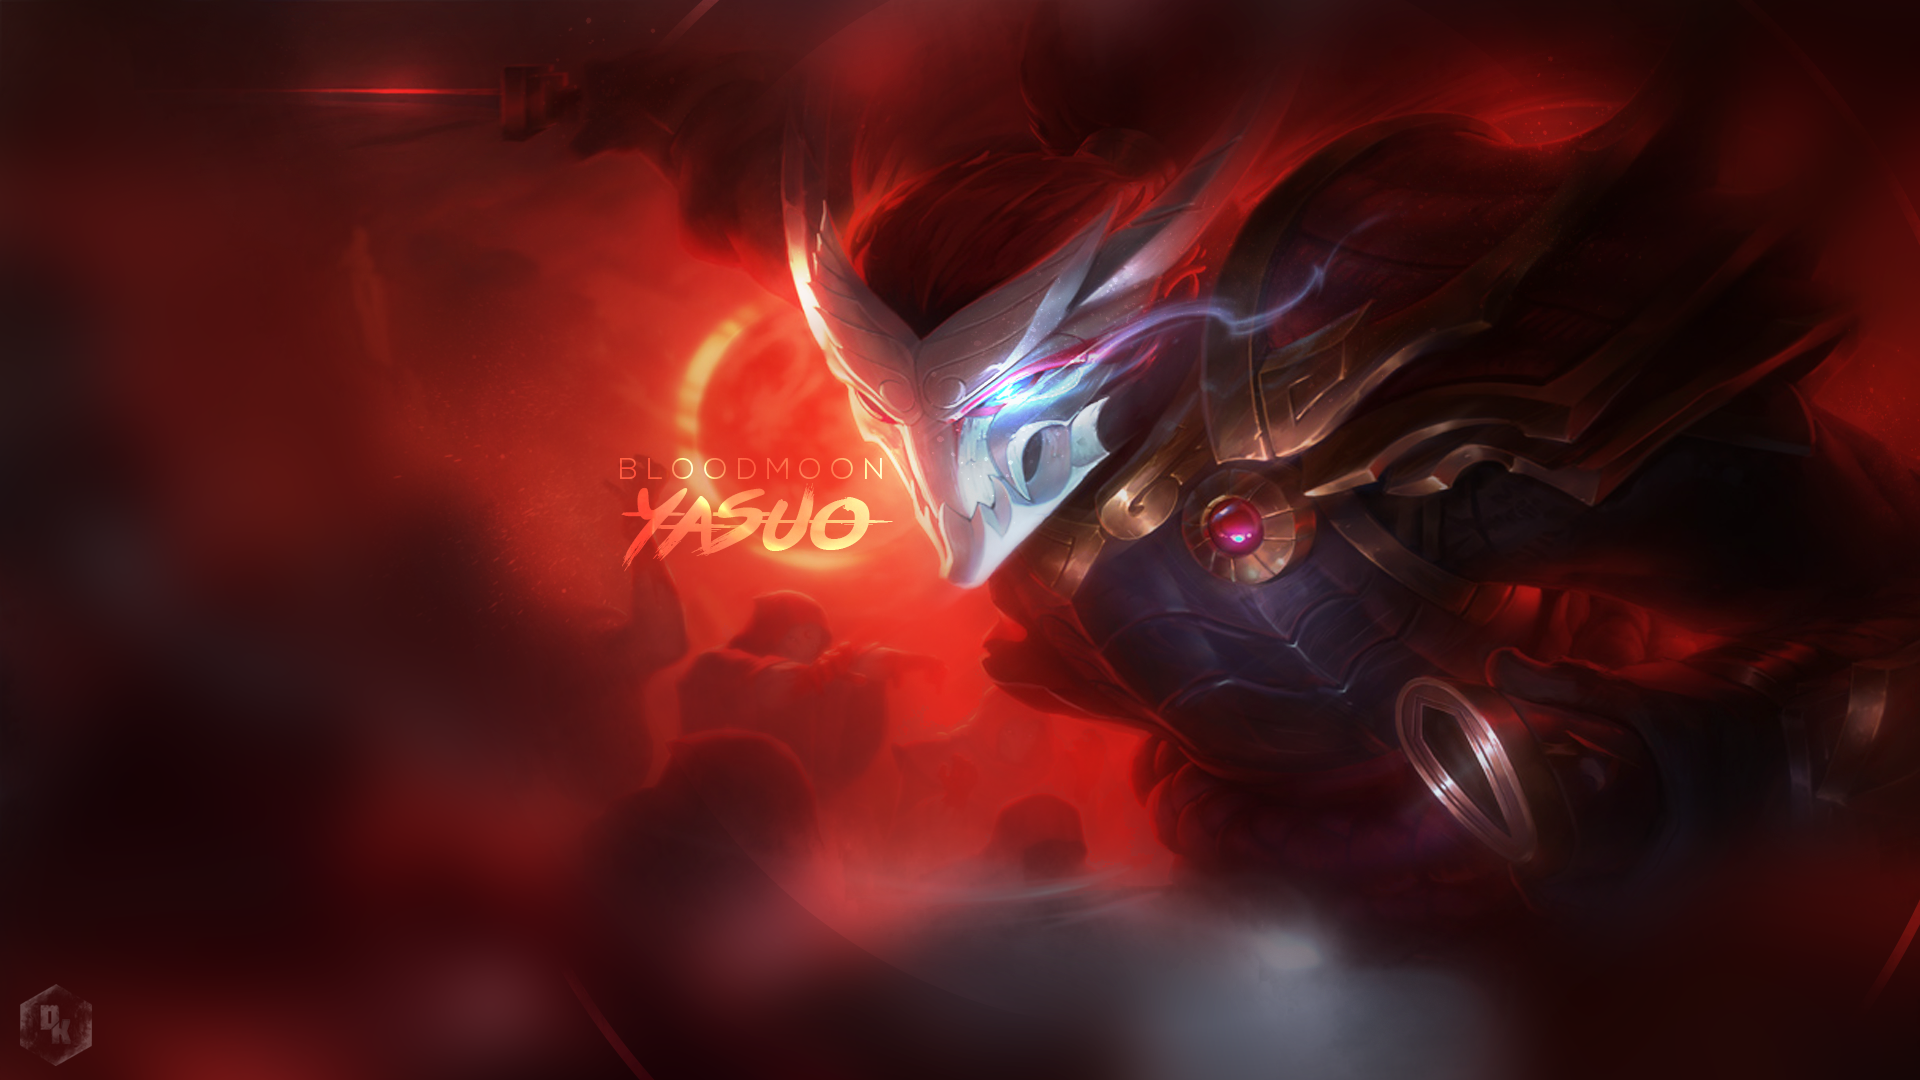 Blood Moon Yasuo by WR-Dwyndle on DeviantArt